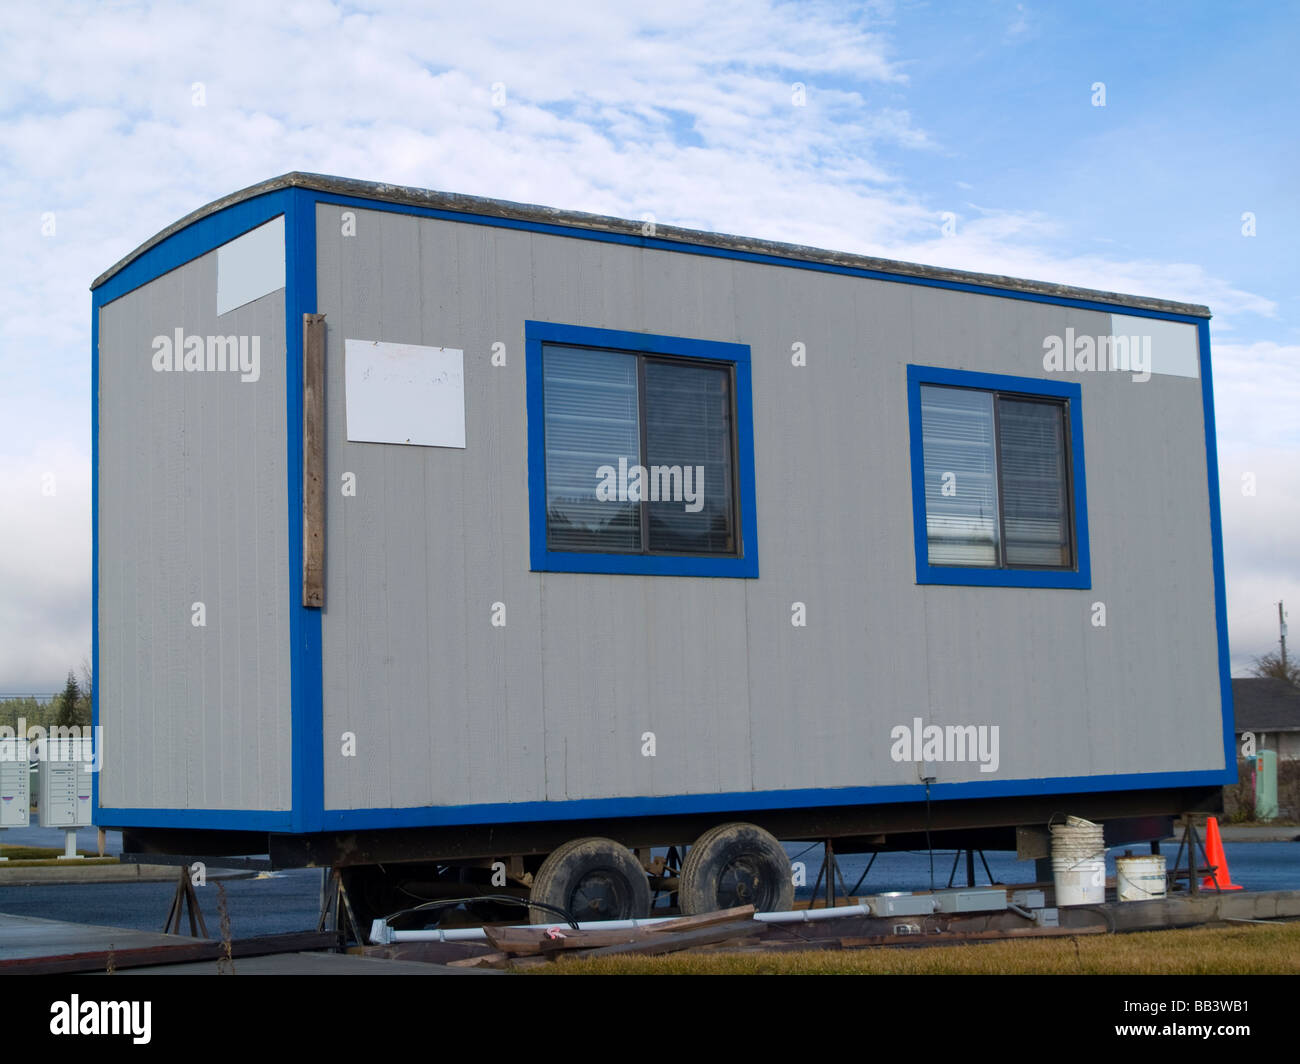 A small portable office on wheels at a construction site